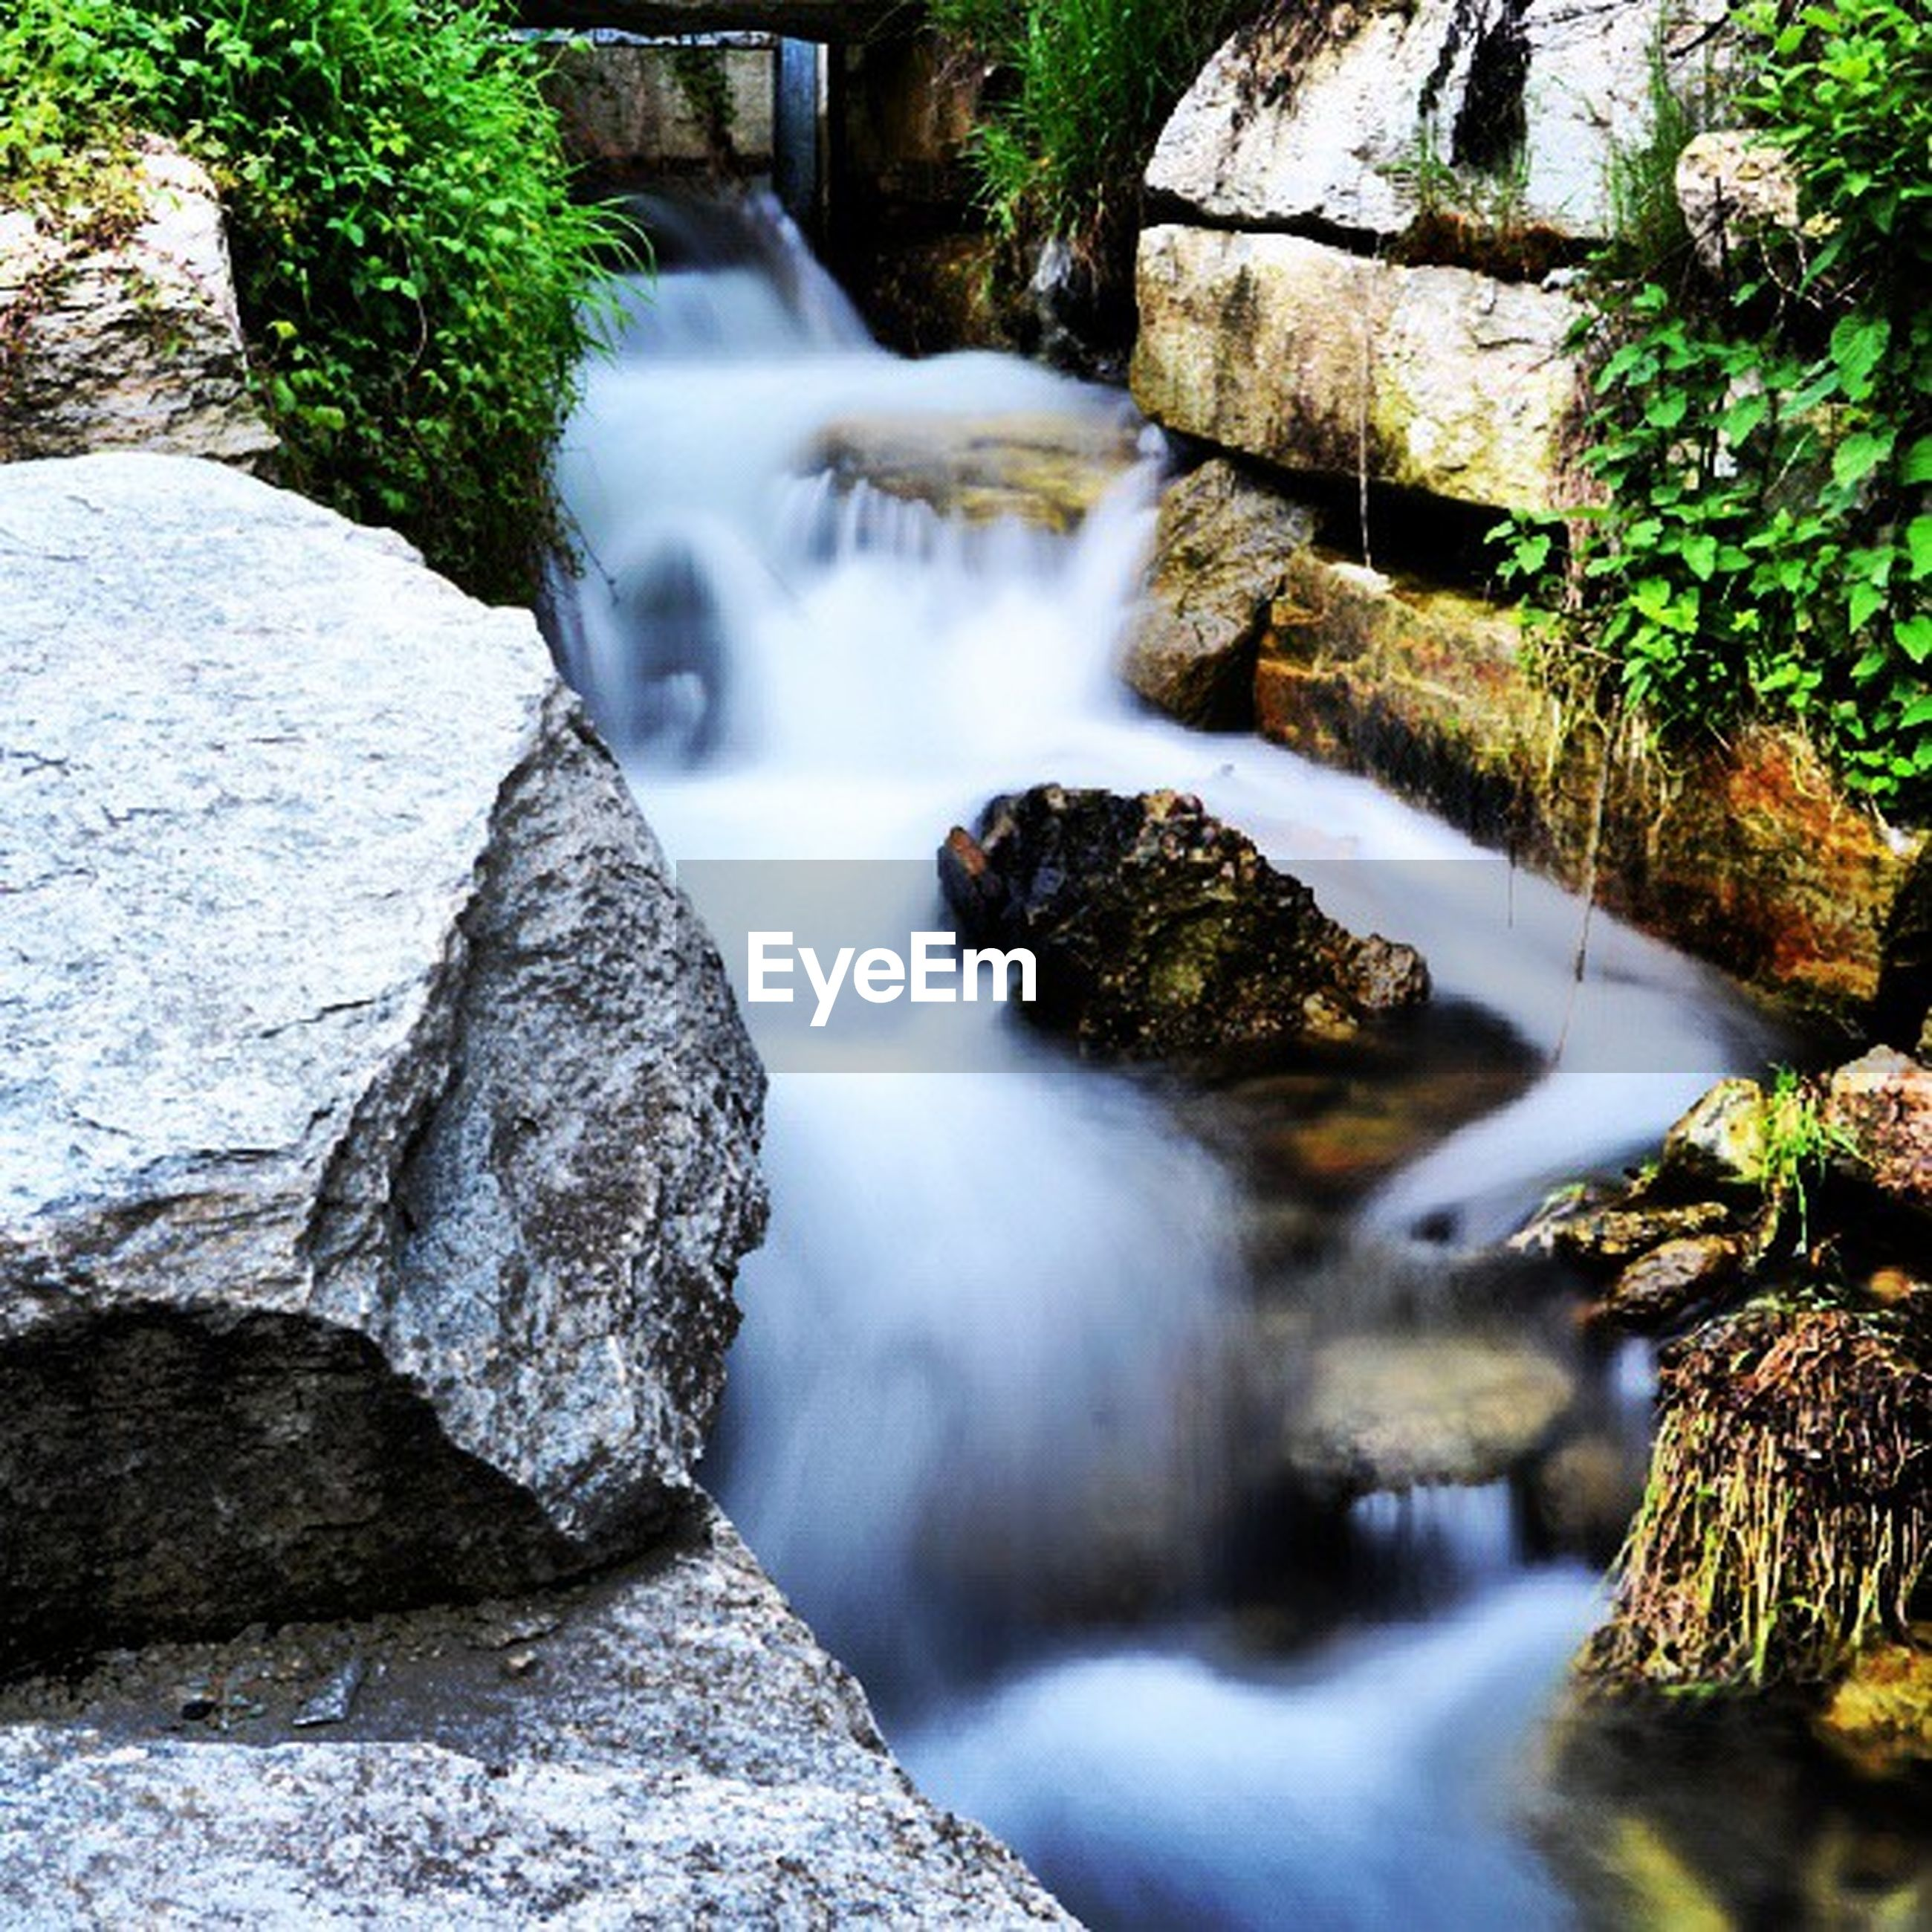 water, waterfall, flowing water, motion, flowing, long exposure, rock - object, stream, nature, beauty in nature, forest, blurred motion, rock, rock formation, scenics, river, tree, outdoors, day, plant